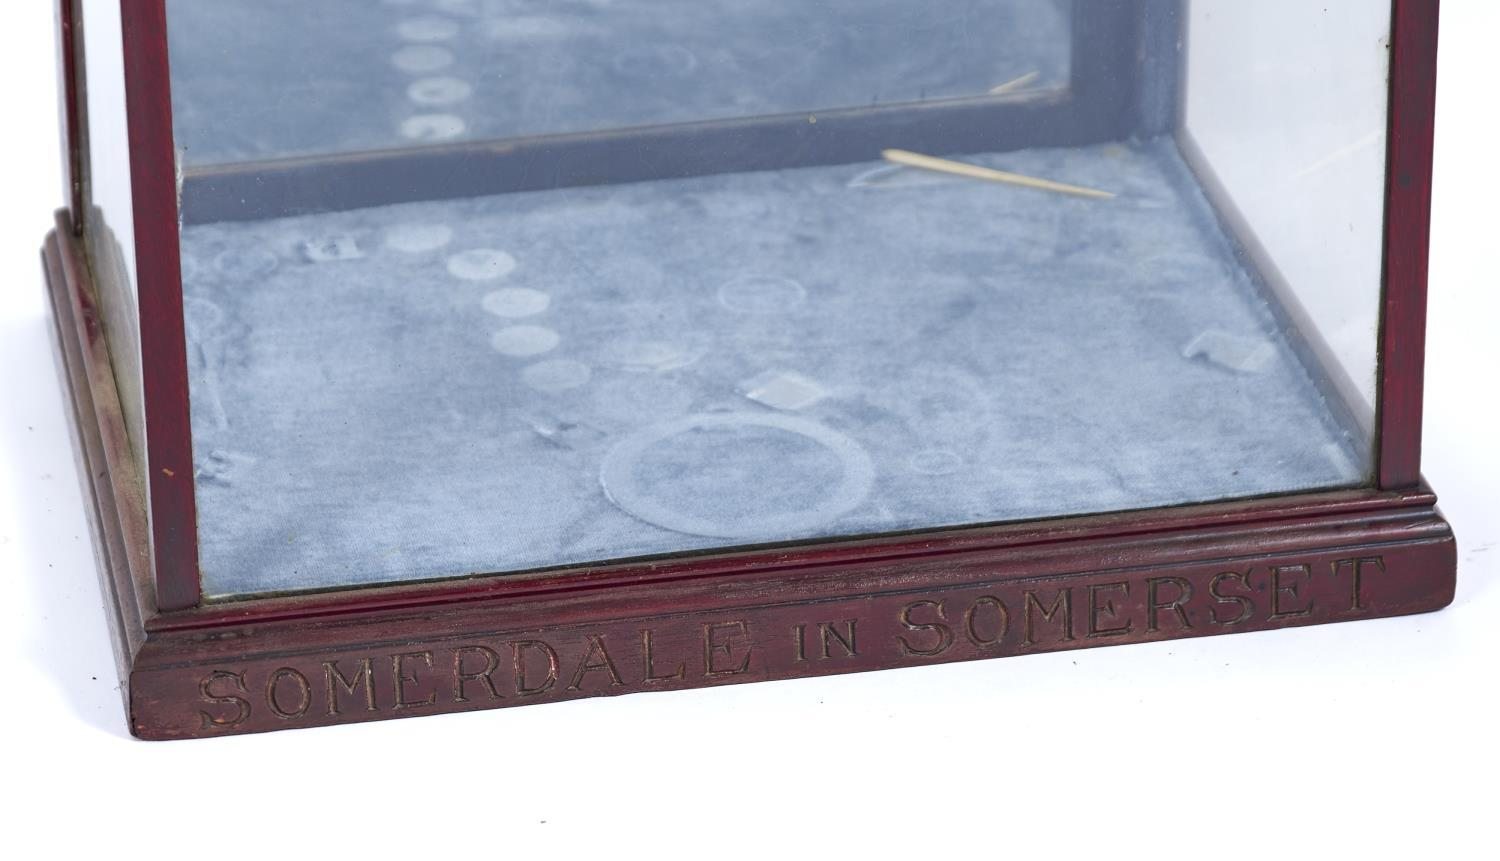 SOMERDALE IN SOMERSET - A TABLE TOP MAHOGANY DISPLAY CABINET WITH FLARED CORNICE, GLAZED FRONT AND - Image 2 of 2